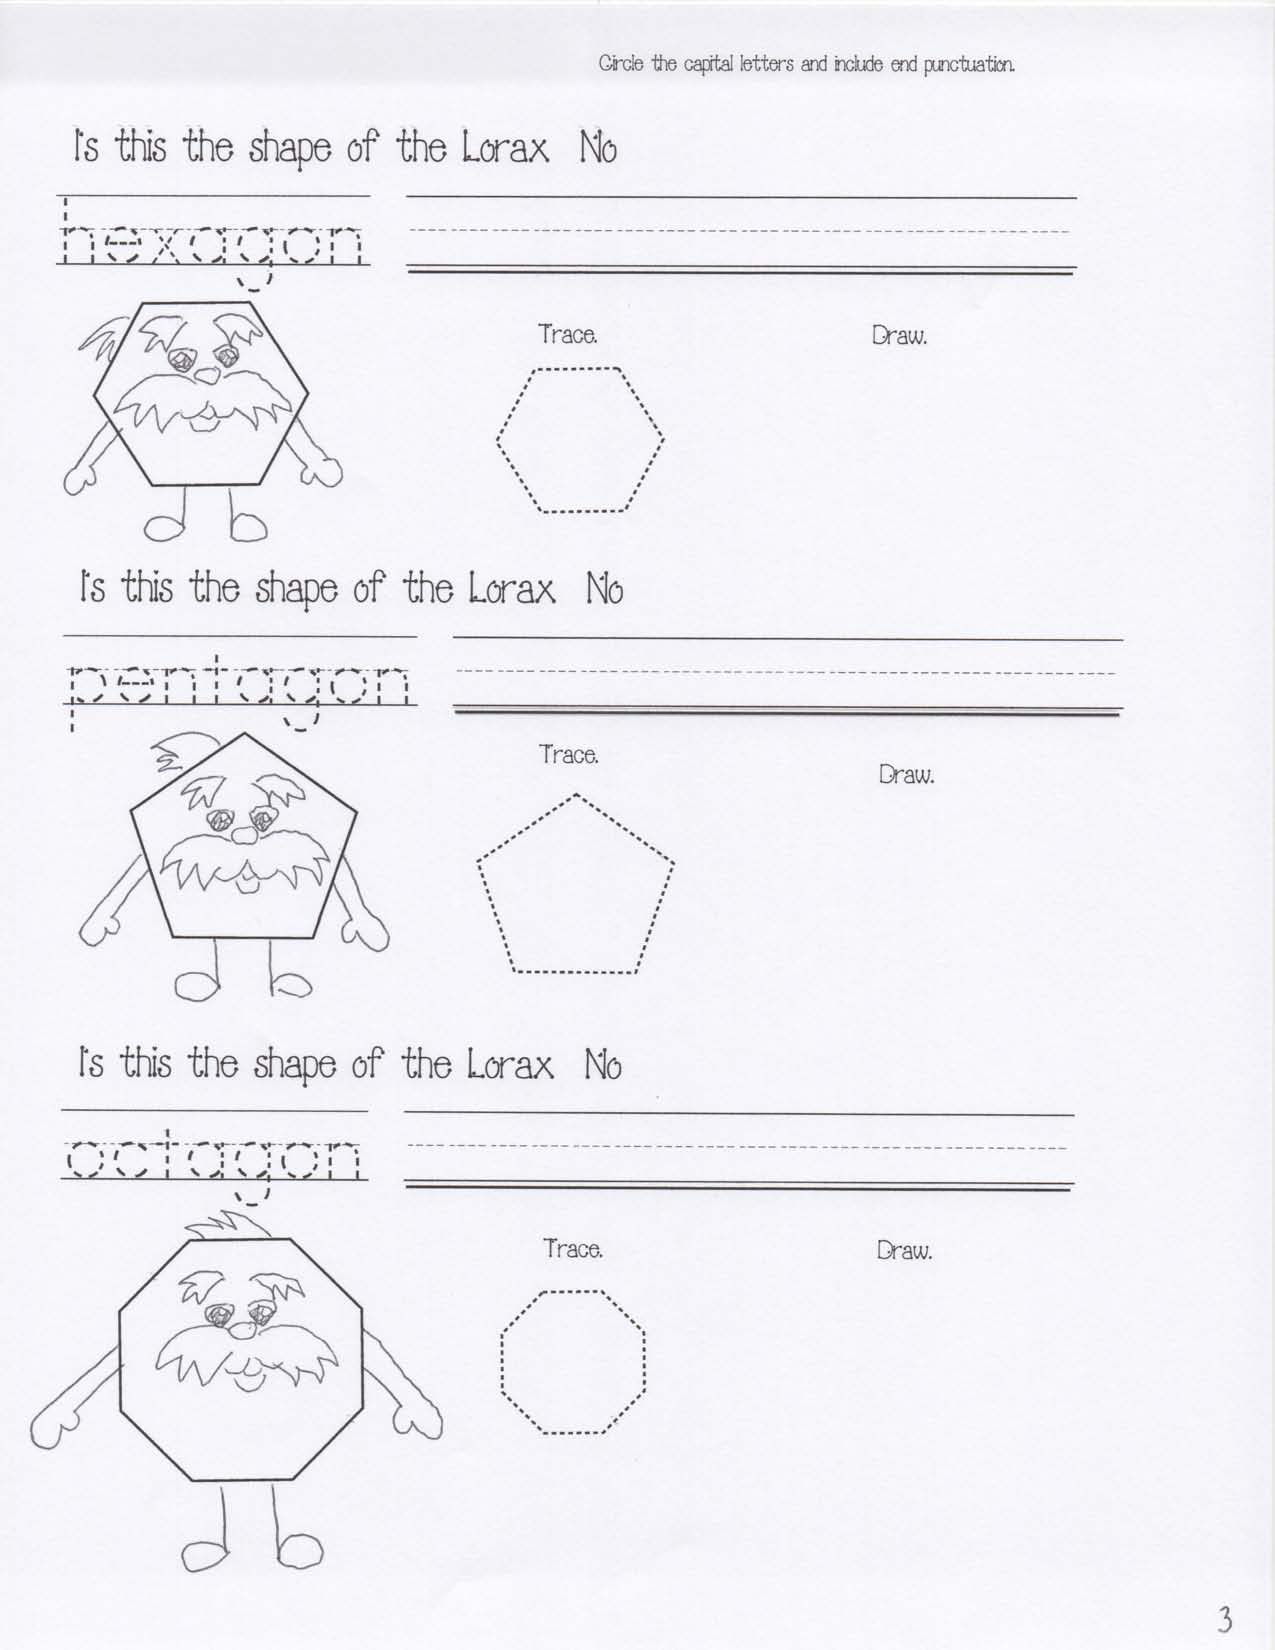 lorax activities, seuss common core, lorax writing prompts, dr seuss writing prompts, dr seuss crafts, mustache activities, common core mustache,lorax common core, shape activities, hexagon activities, 2D shape lessons, easy reader booklets, shape booklet, lorax crafts, lorax shapes, lorax lessons, seuss crafts, seuss shapes, lorax common core, march bulletin boards, seuss bulletin boards, lorax bulletin boards, spring bulletin boards,